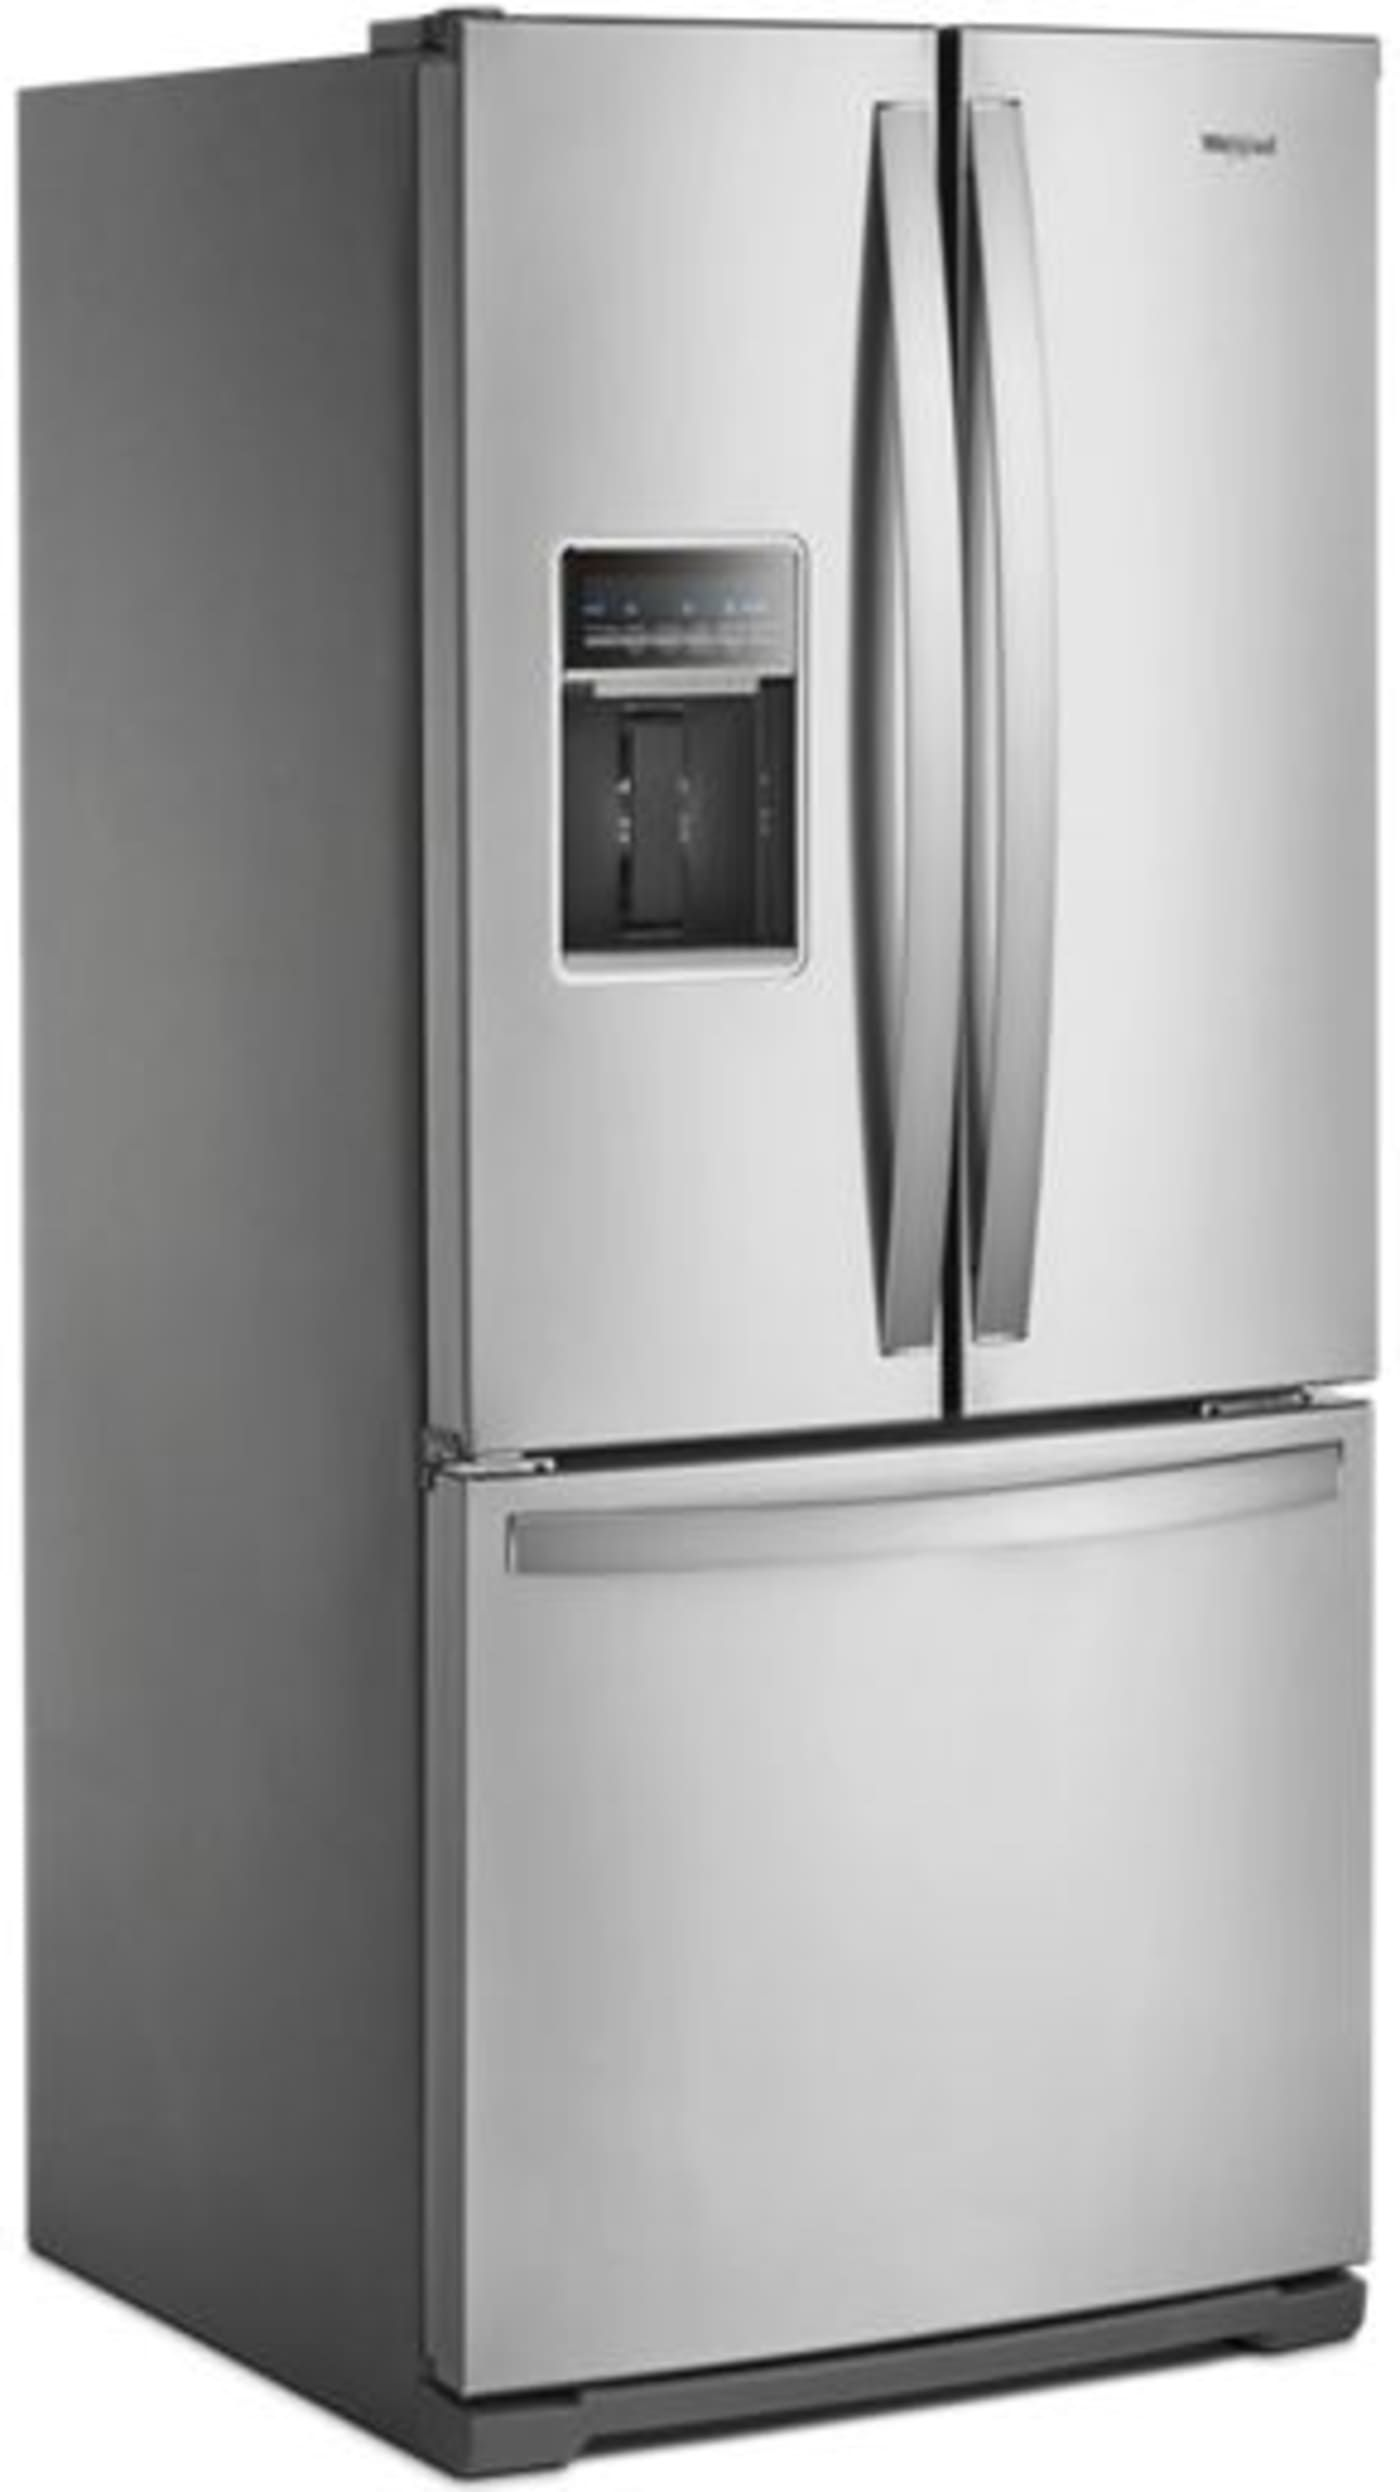 Wrf560sehz By Whirlpool French Door Refrigerators Goedekers Com Stainless Steel French Door Refrigerator French Door Refrigerator French Doors